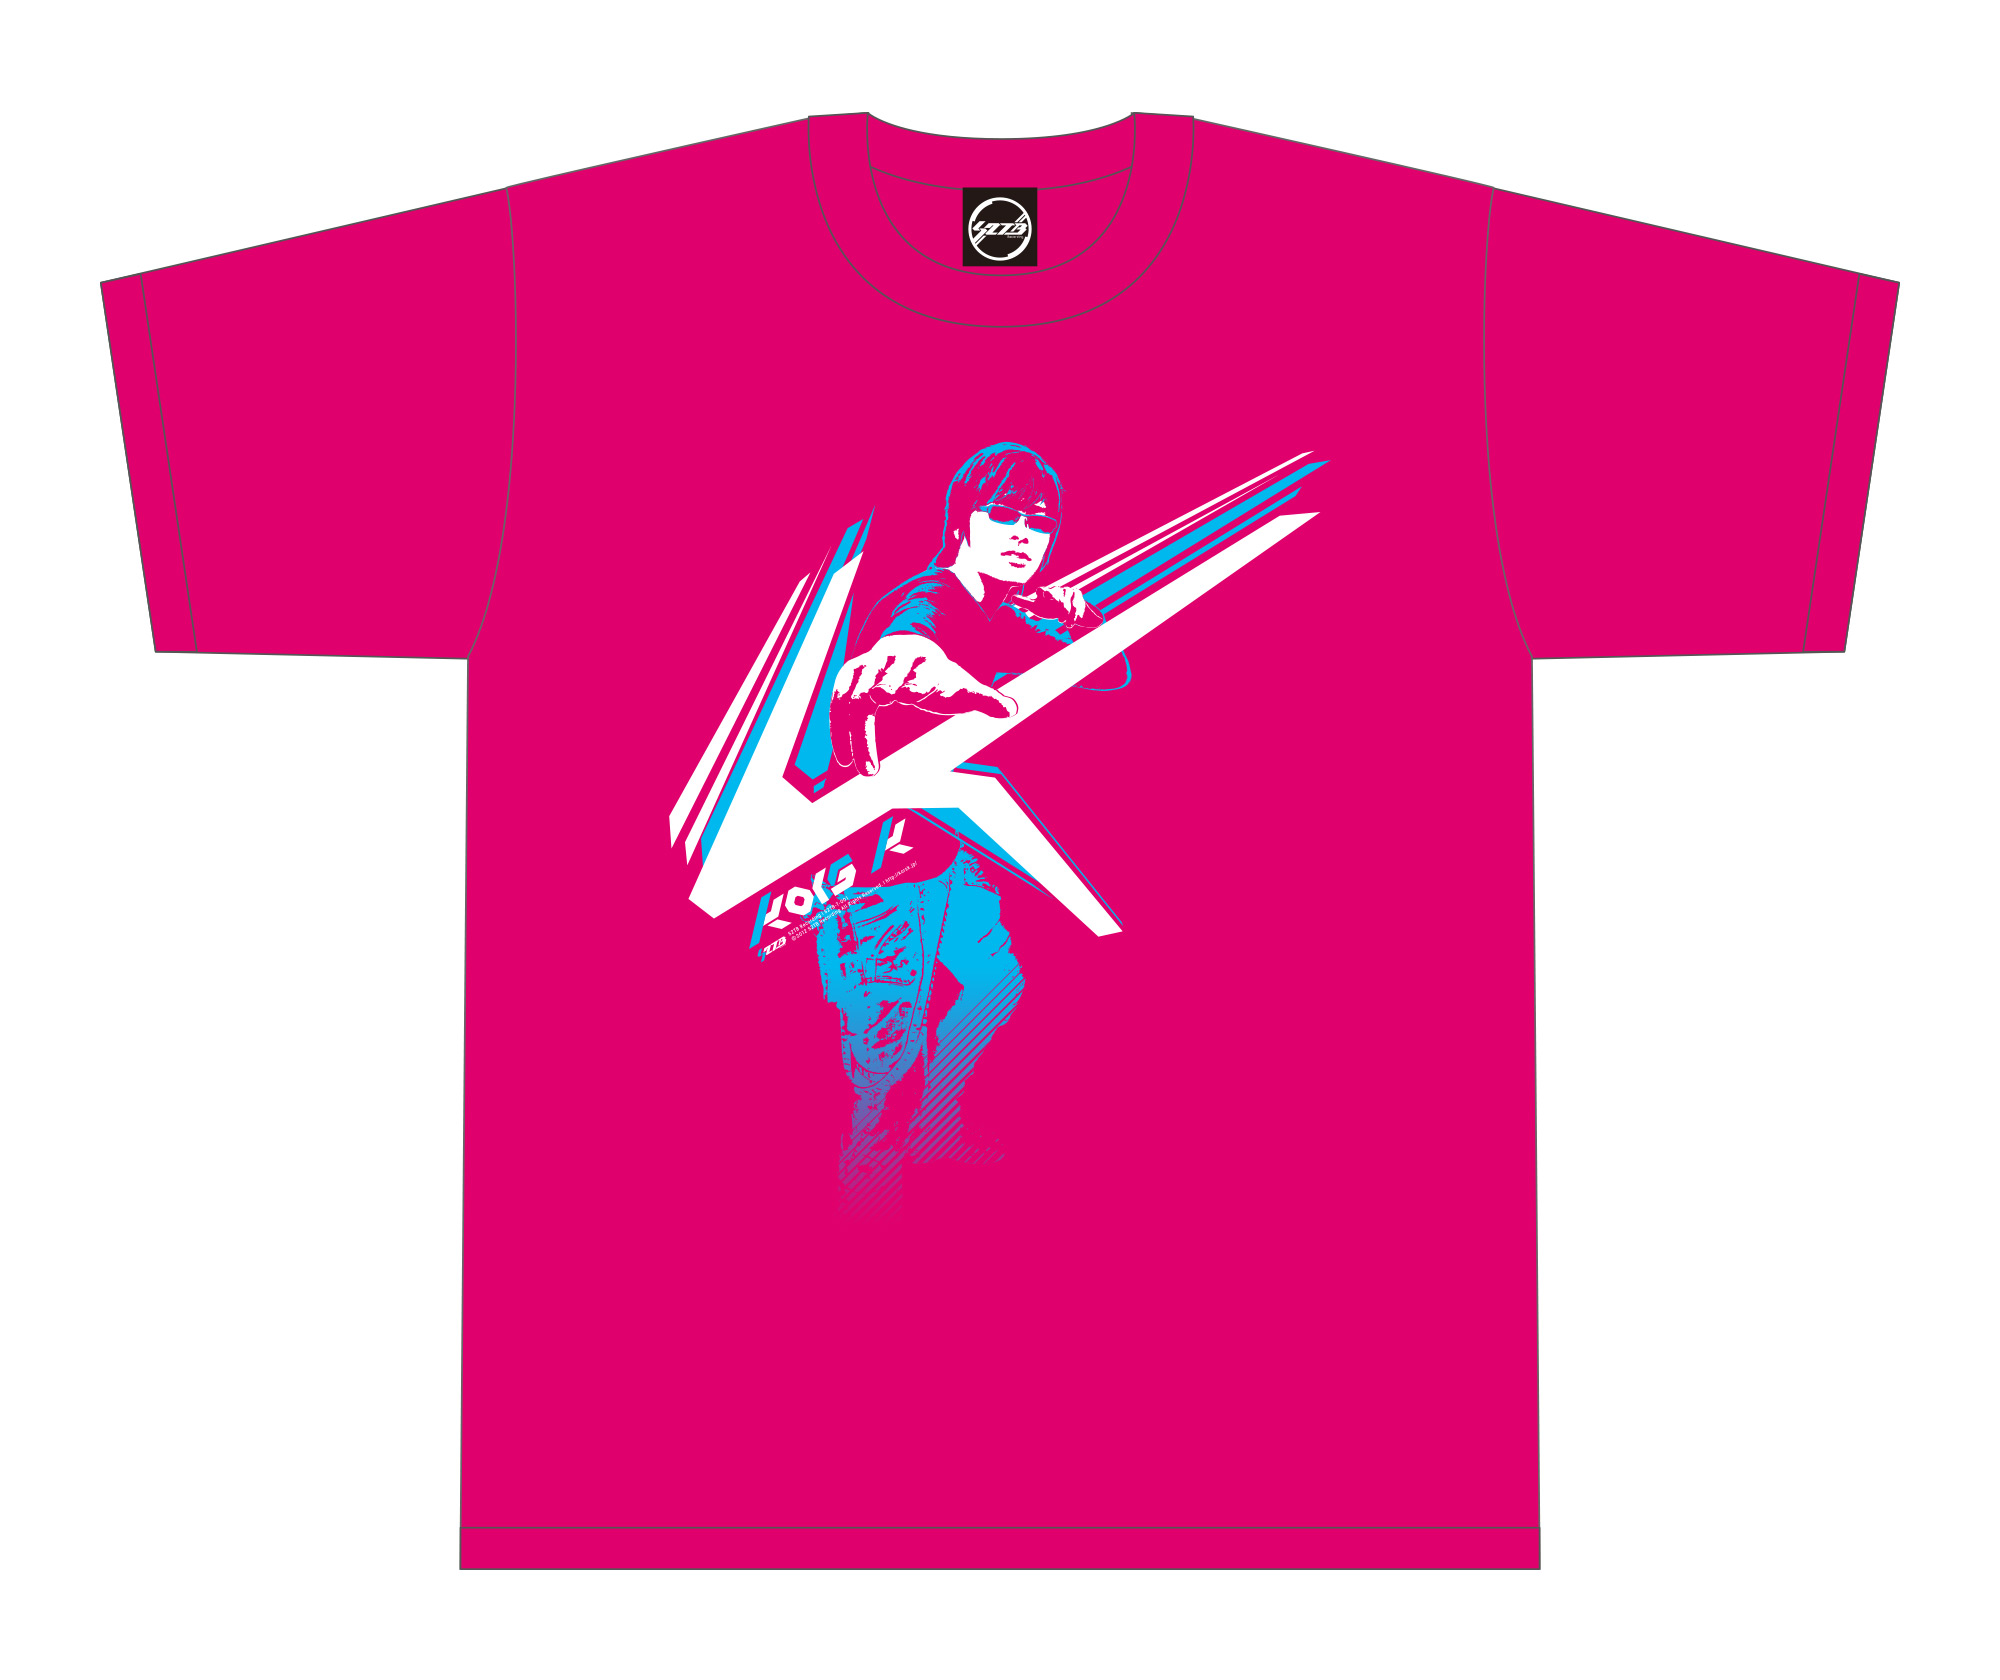 kors k Pose T-shirt